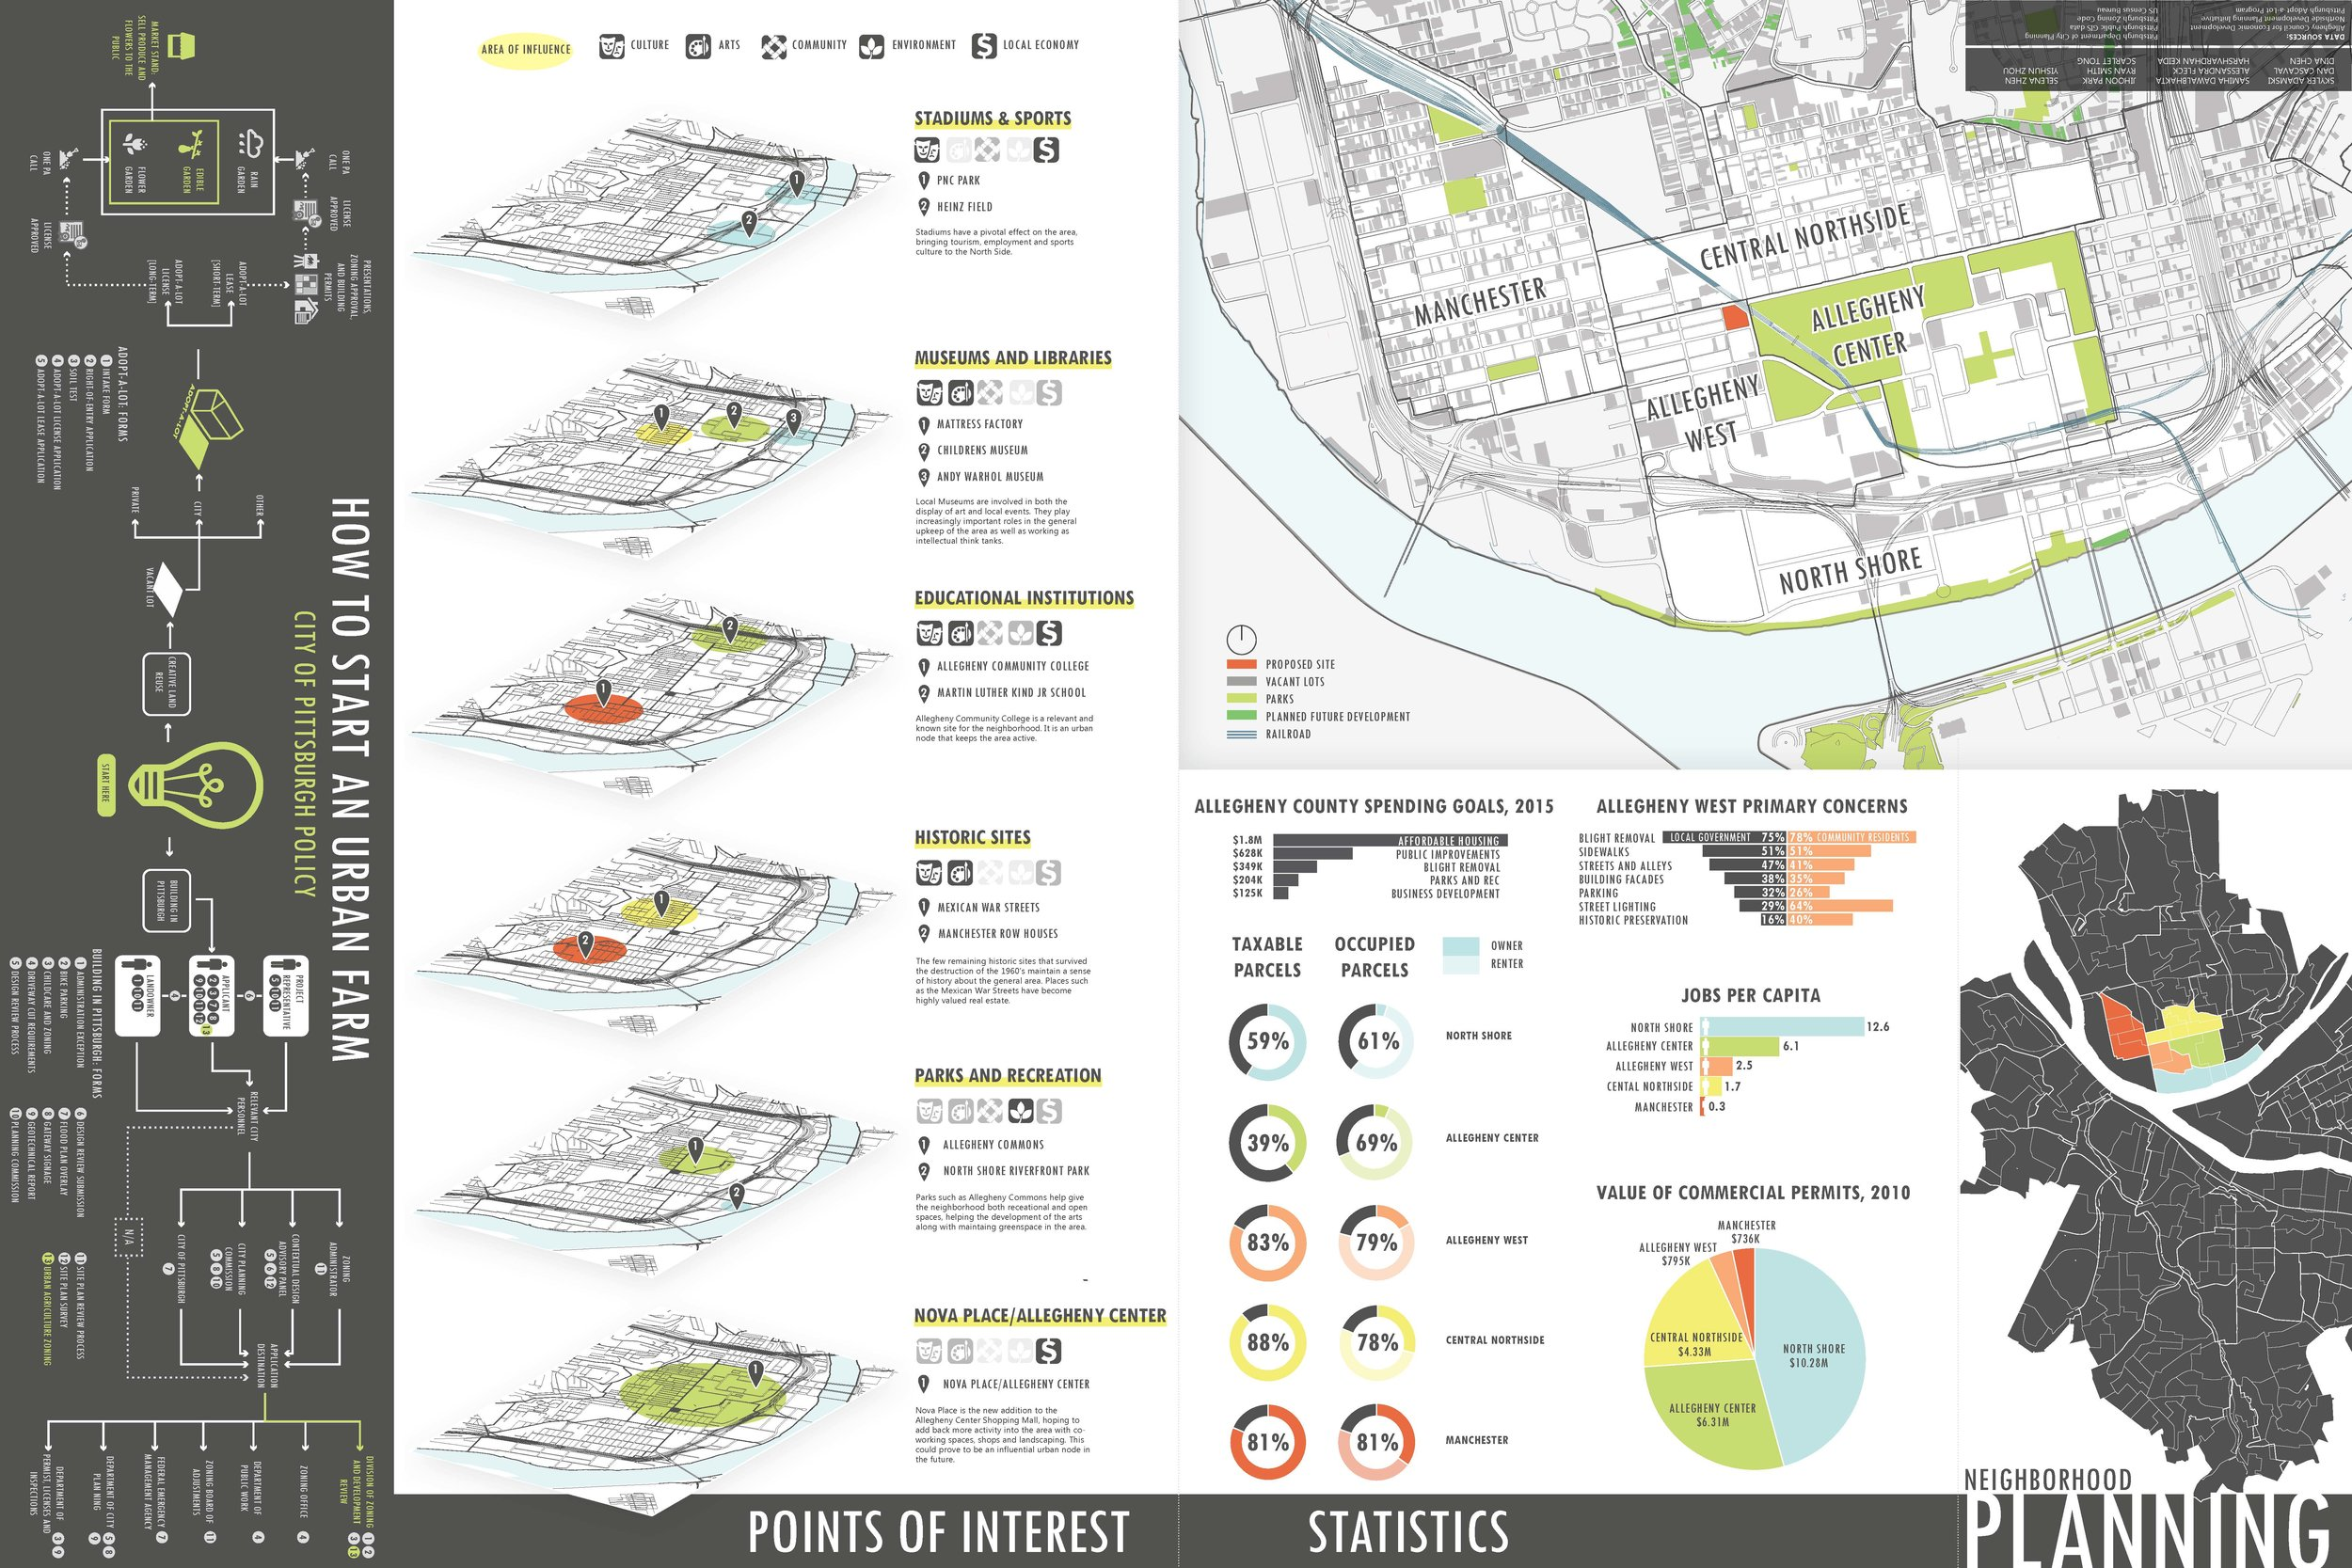 F16  Grow Atlas: Urban Planning   | Student team researched and designed a foldable atlas exploring the theme of urban planning in Pittsburgh's historic North Side neighborhoods.